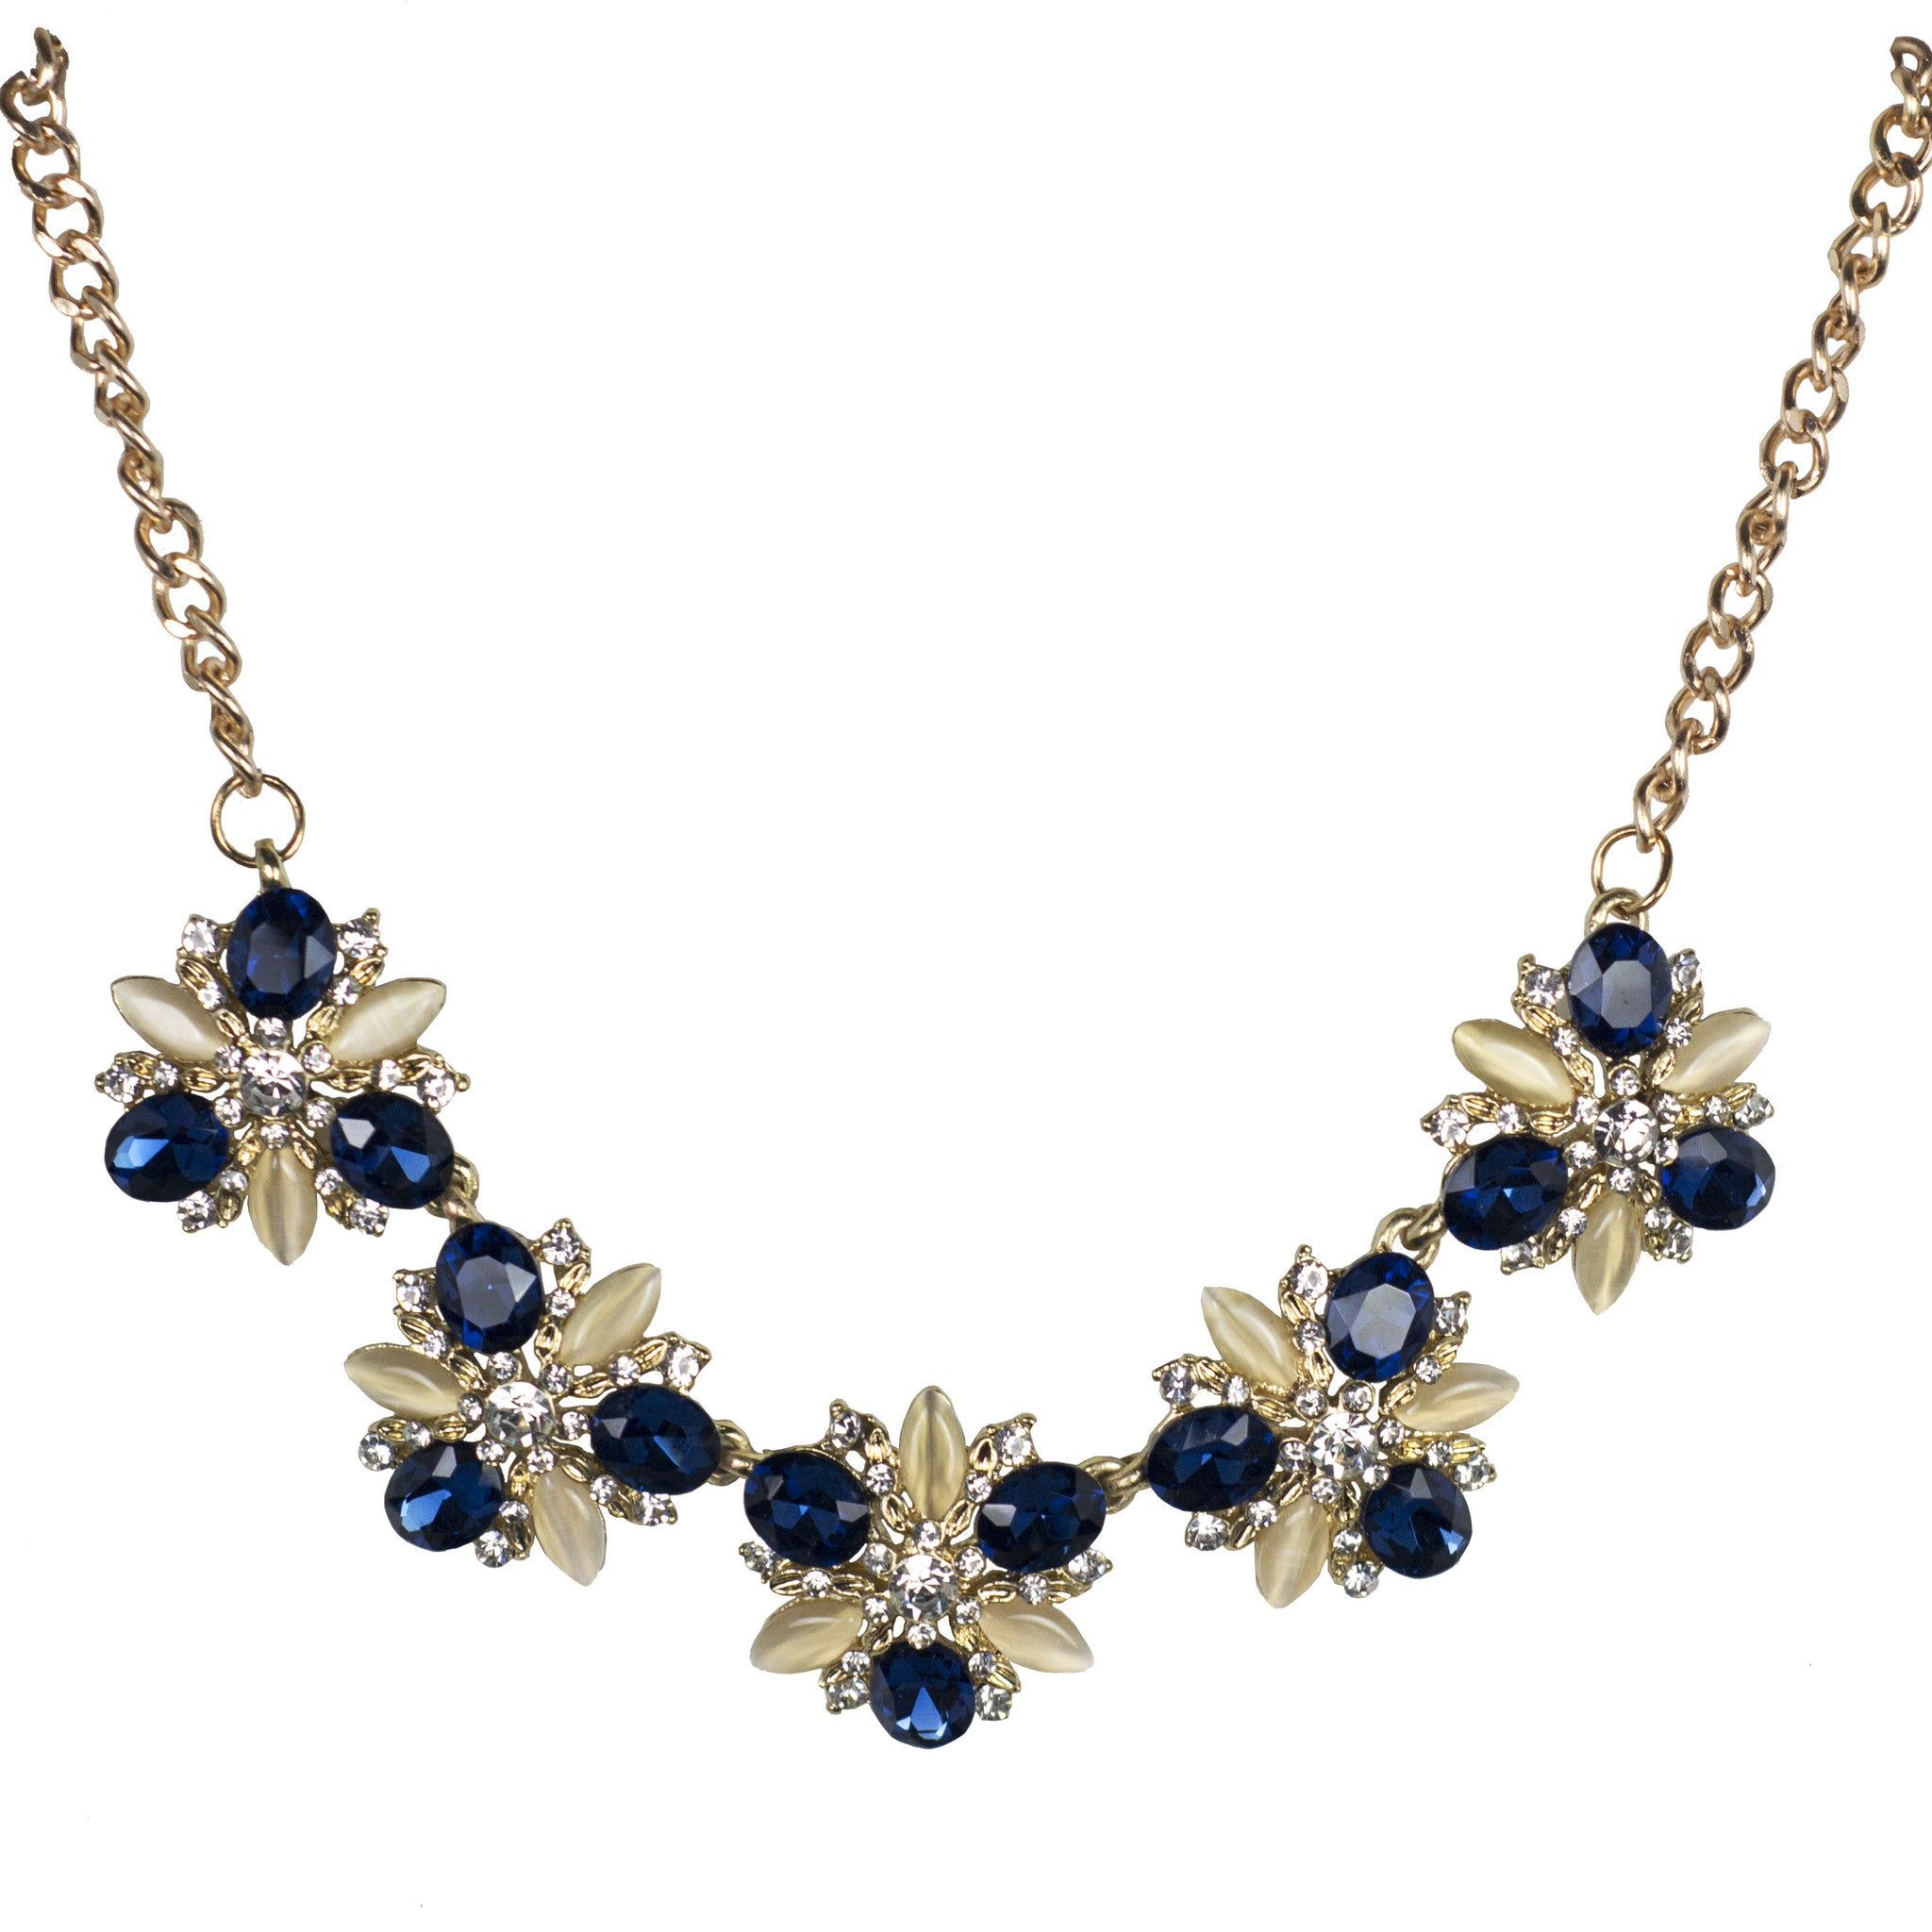 Scarlett Blue and Gold Fashion Necklace